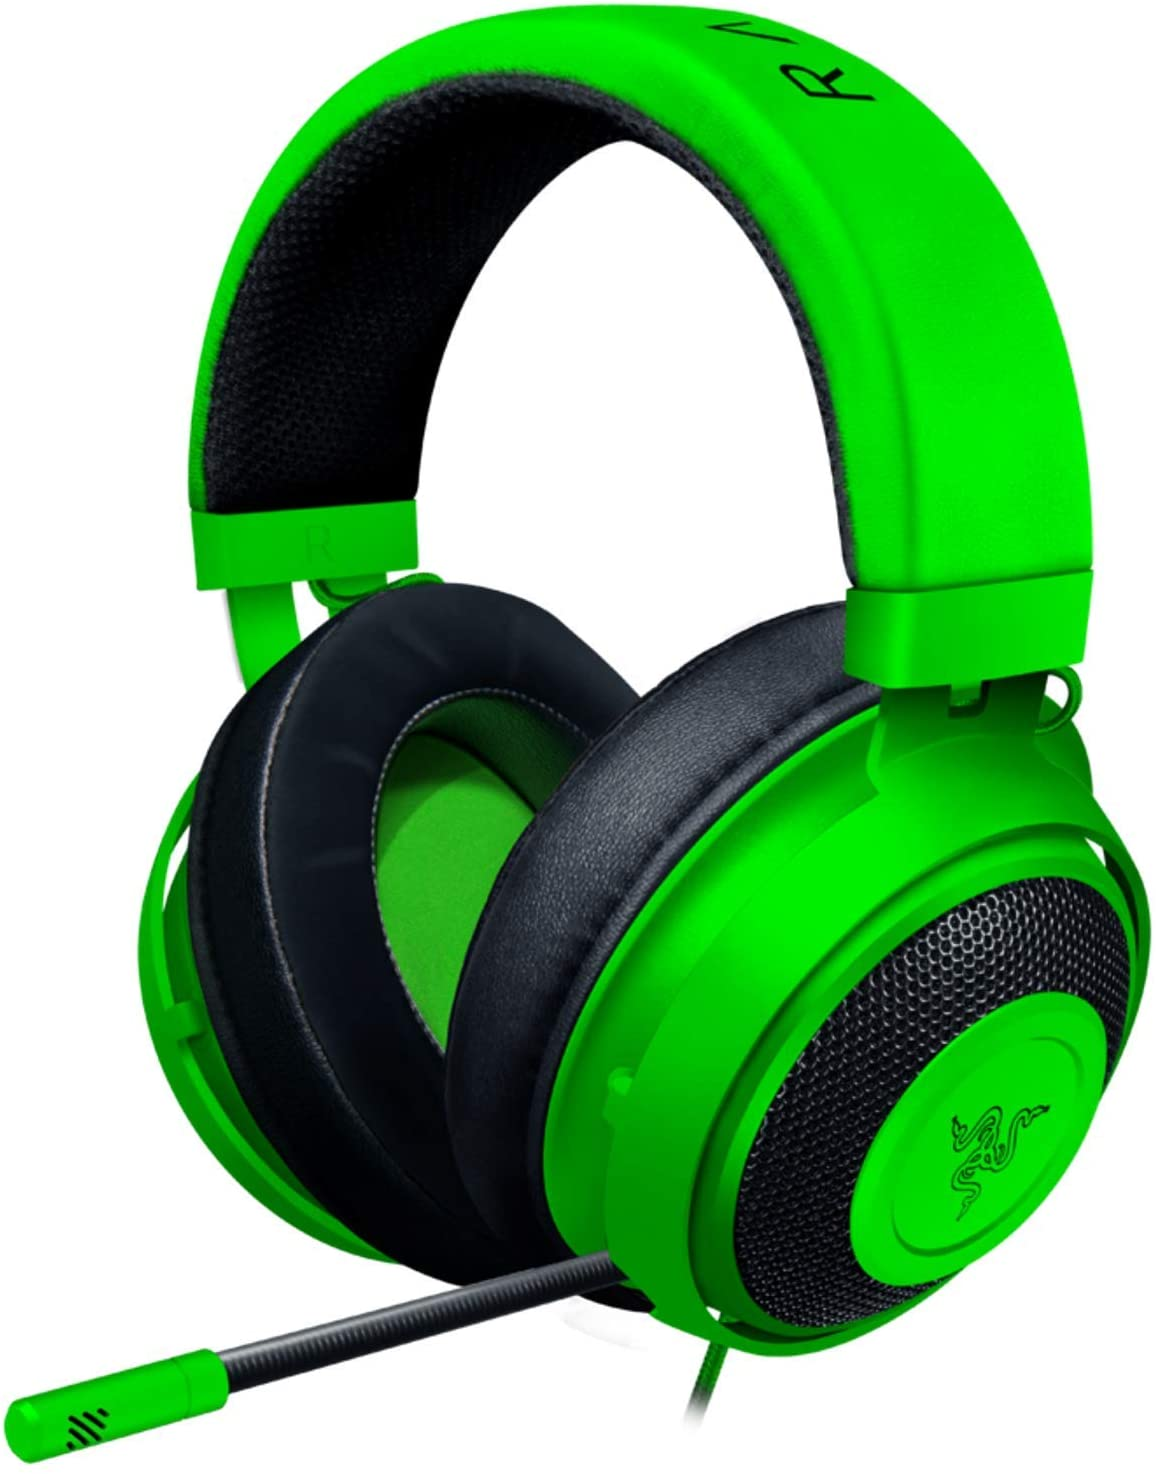 BEST HEADSETS FOR GAMING UNDER $50